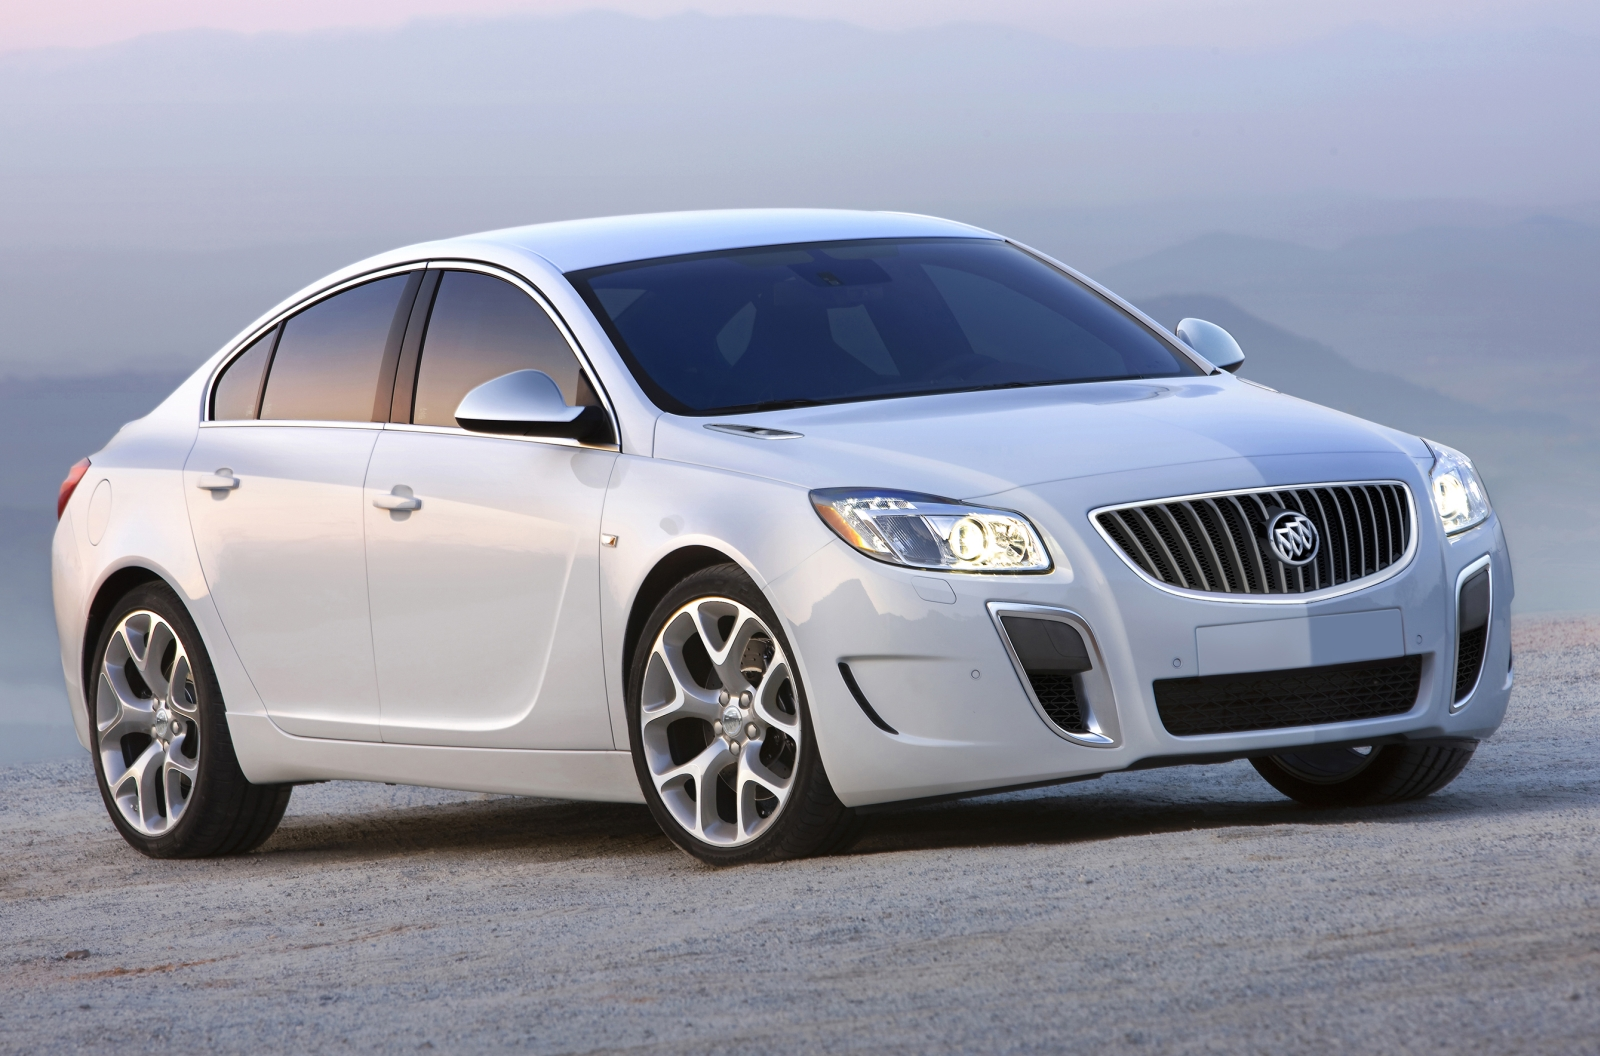 Buick Regal GS - 1600 x 1056, 01 из 16